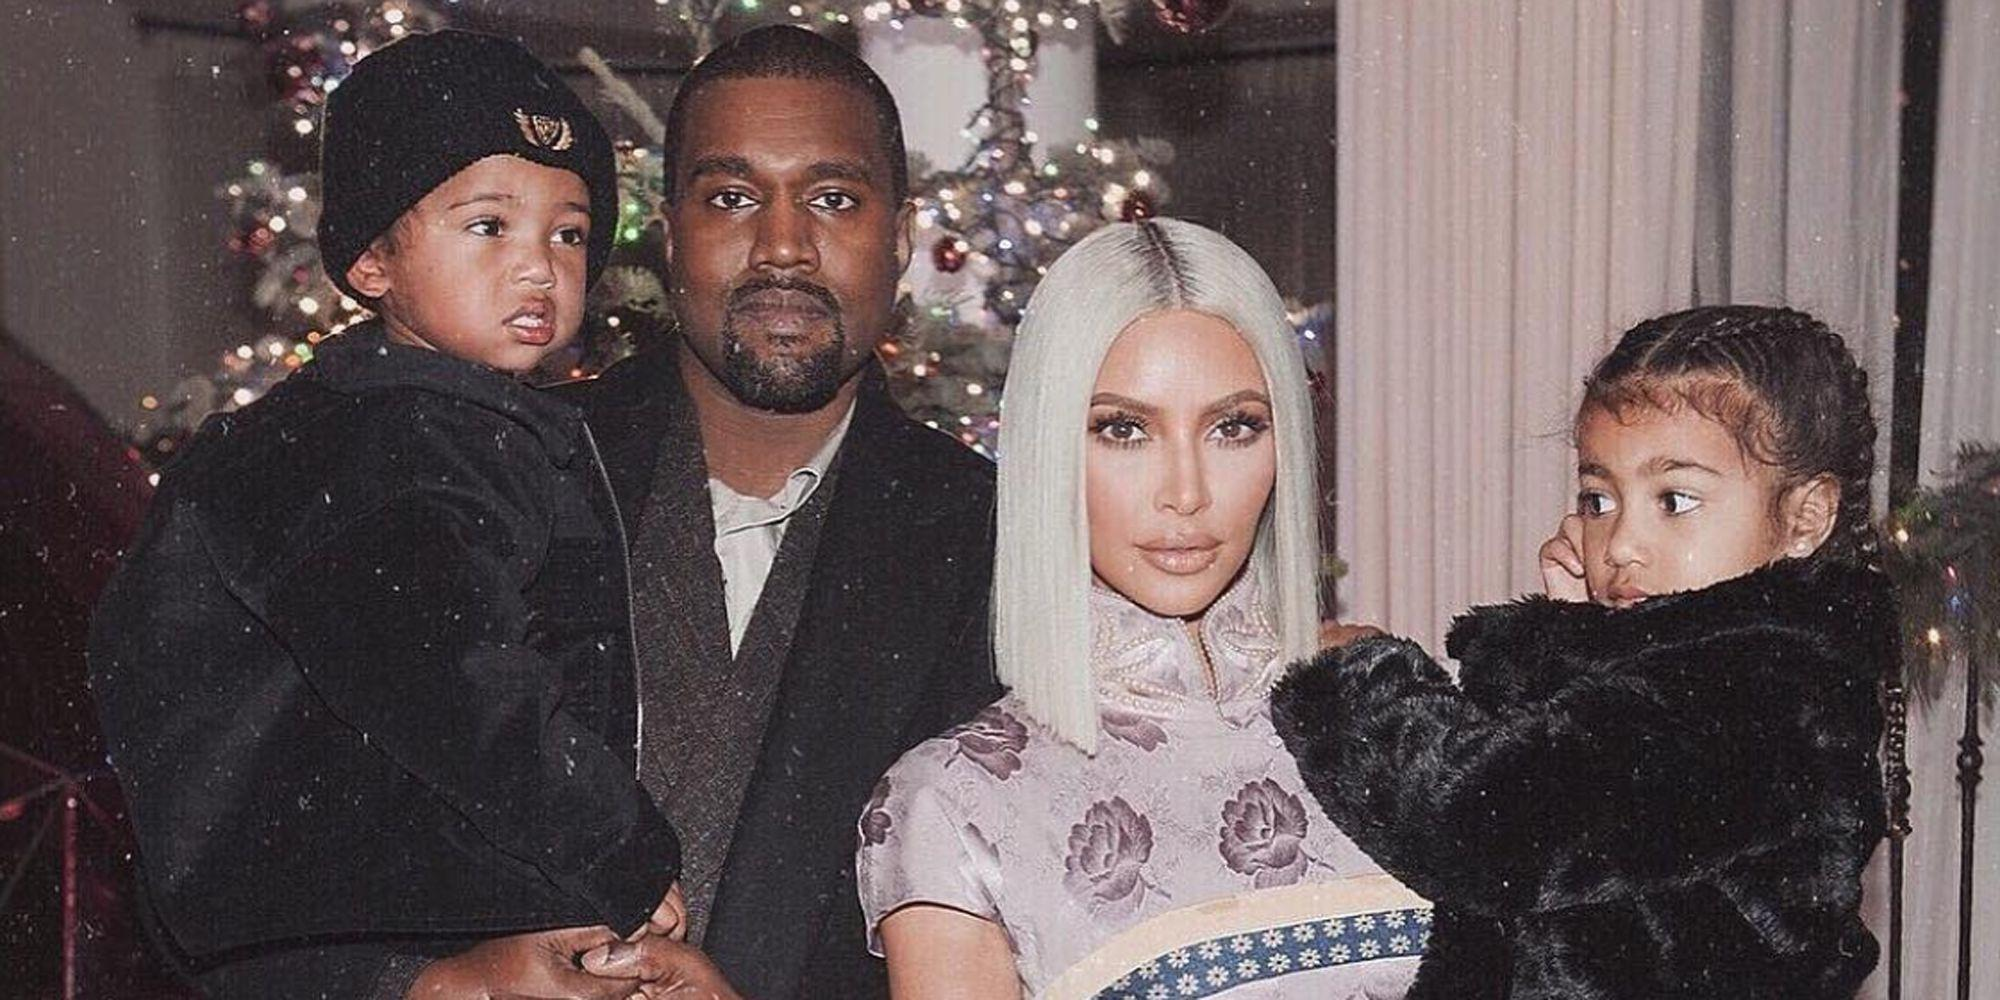 KUWK: Kim Kardashian And Kanye West Love Newborn Son Psalm's Name - It Has A Special Meaning To Them